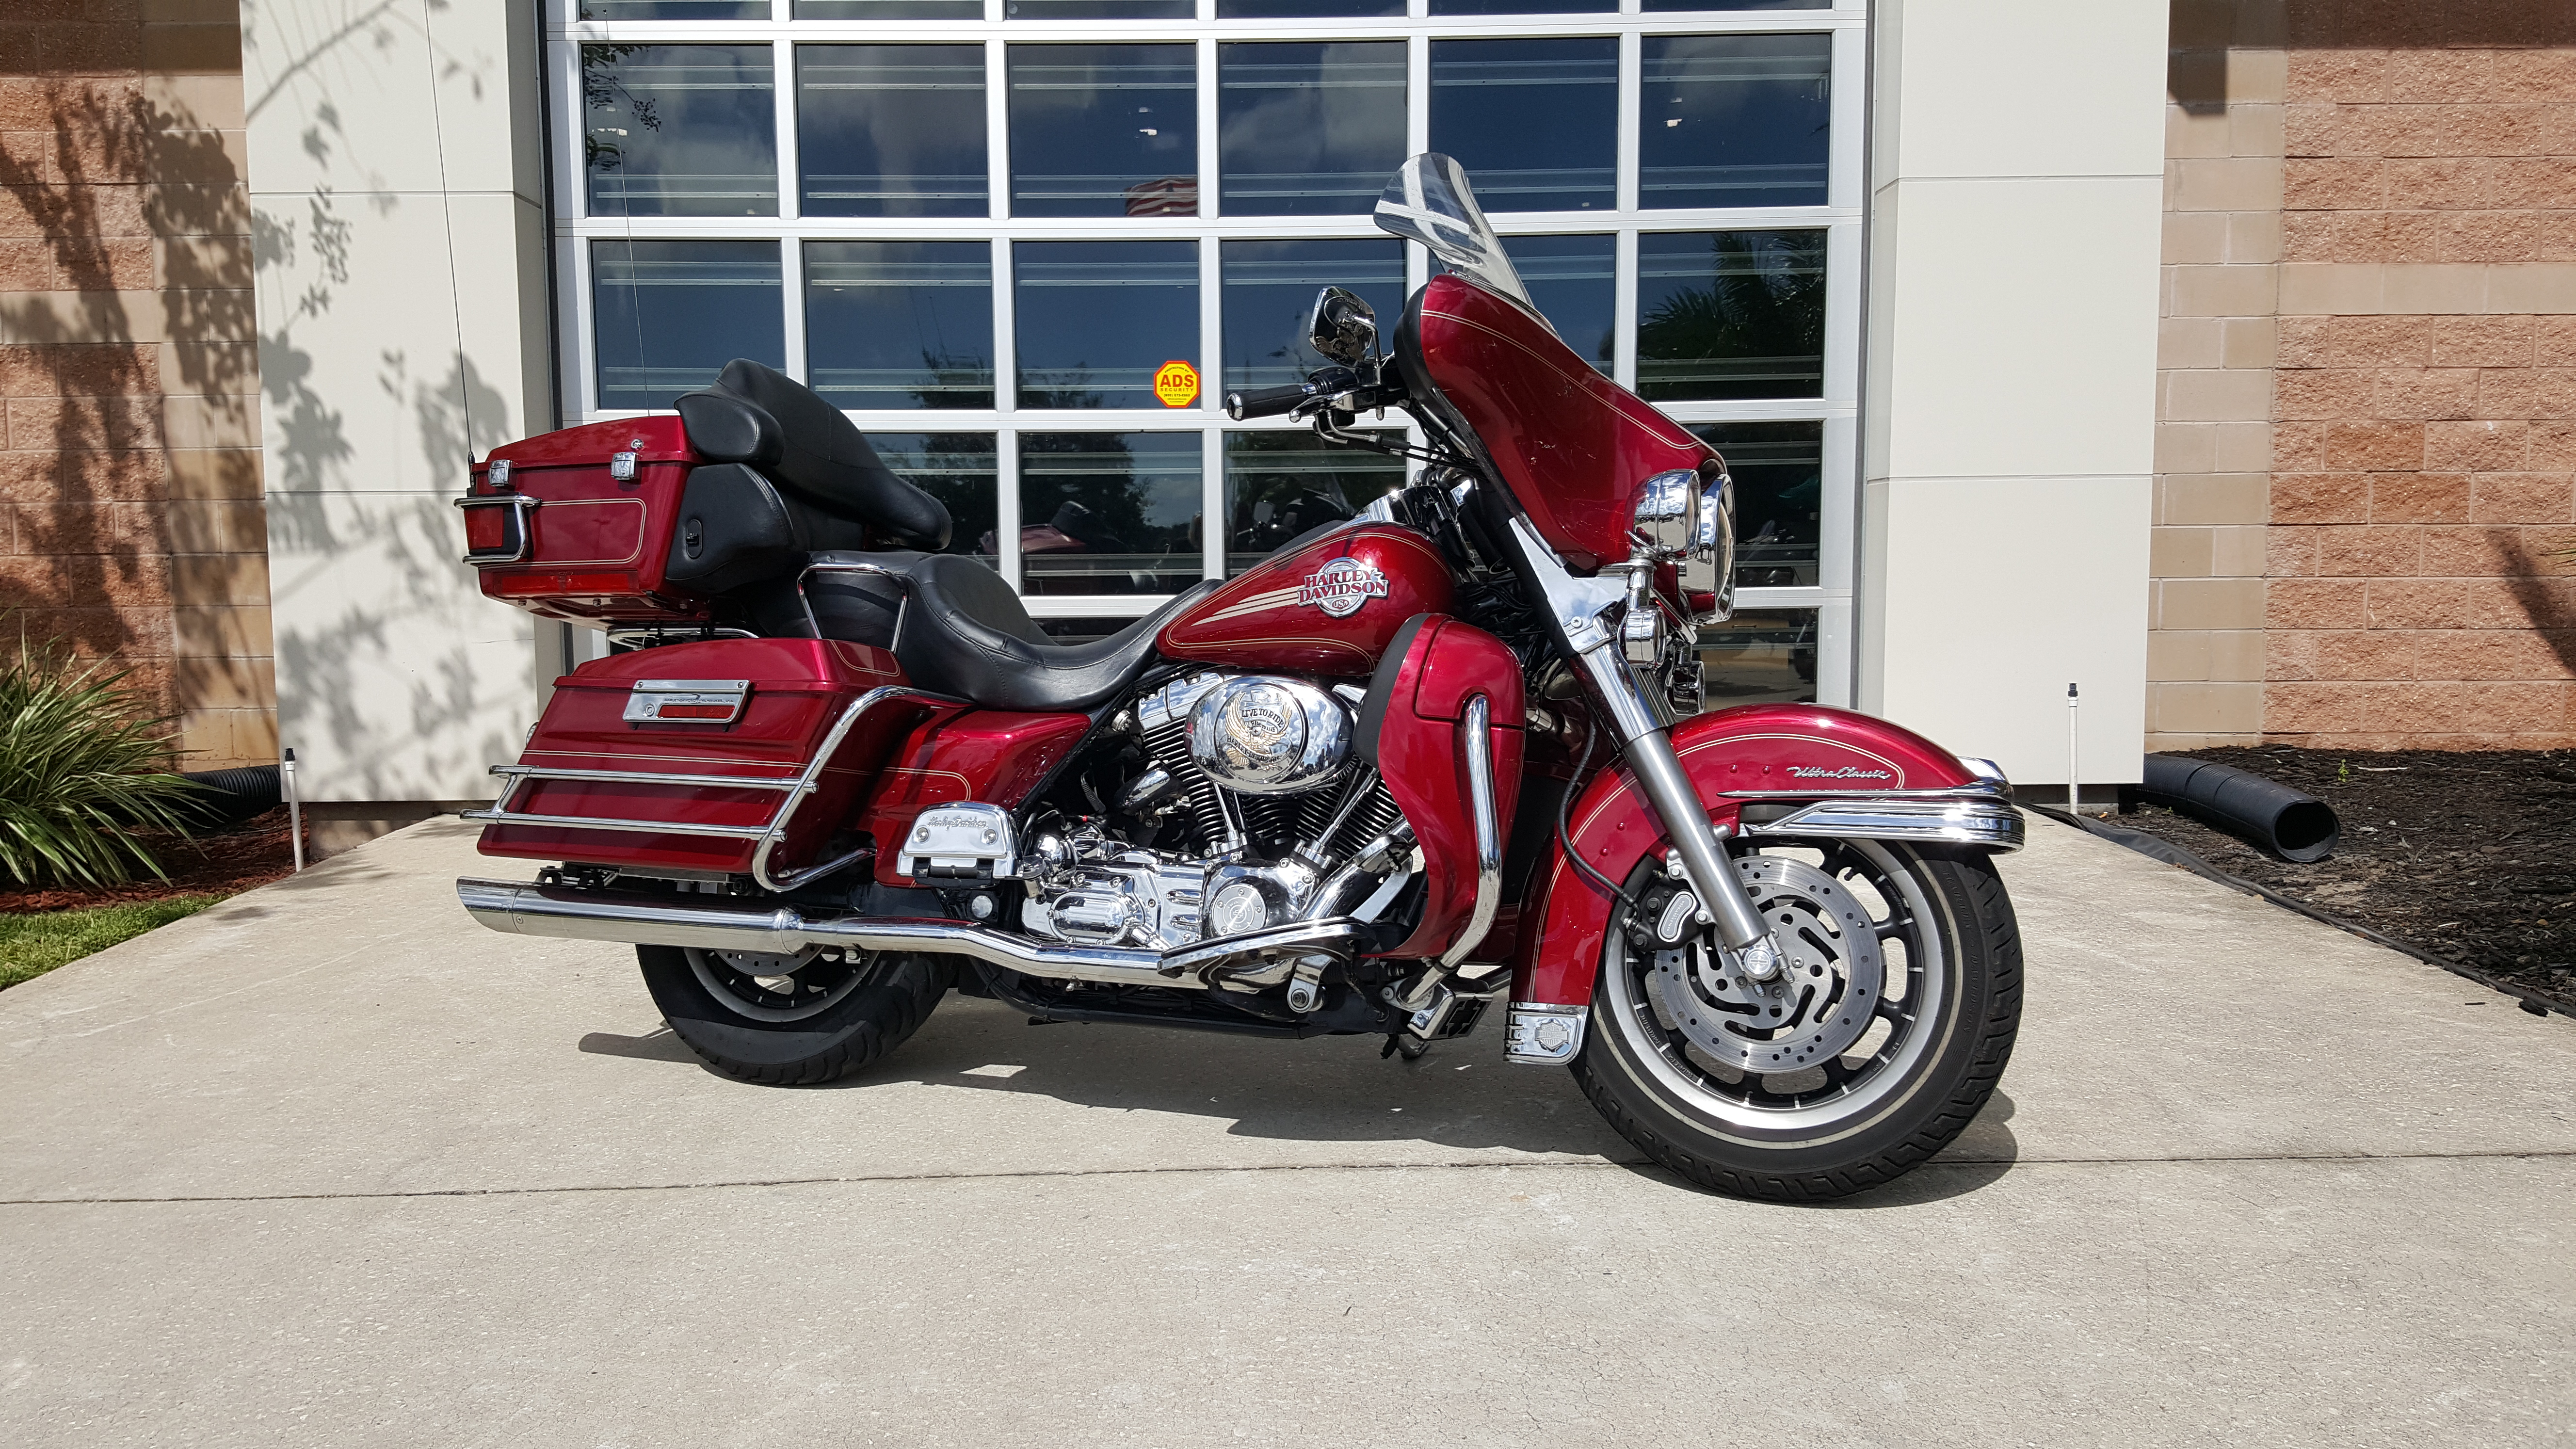 Excellent Pre Owned 2005 Harley Davidson Touring Electra Glide Ultra Classic Flhtcui Unemploymentrelief Wooden Chair Designs For Living Room Unemploymentrelieforg